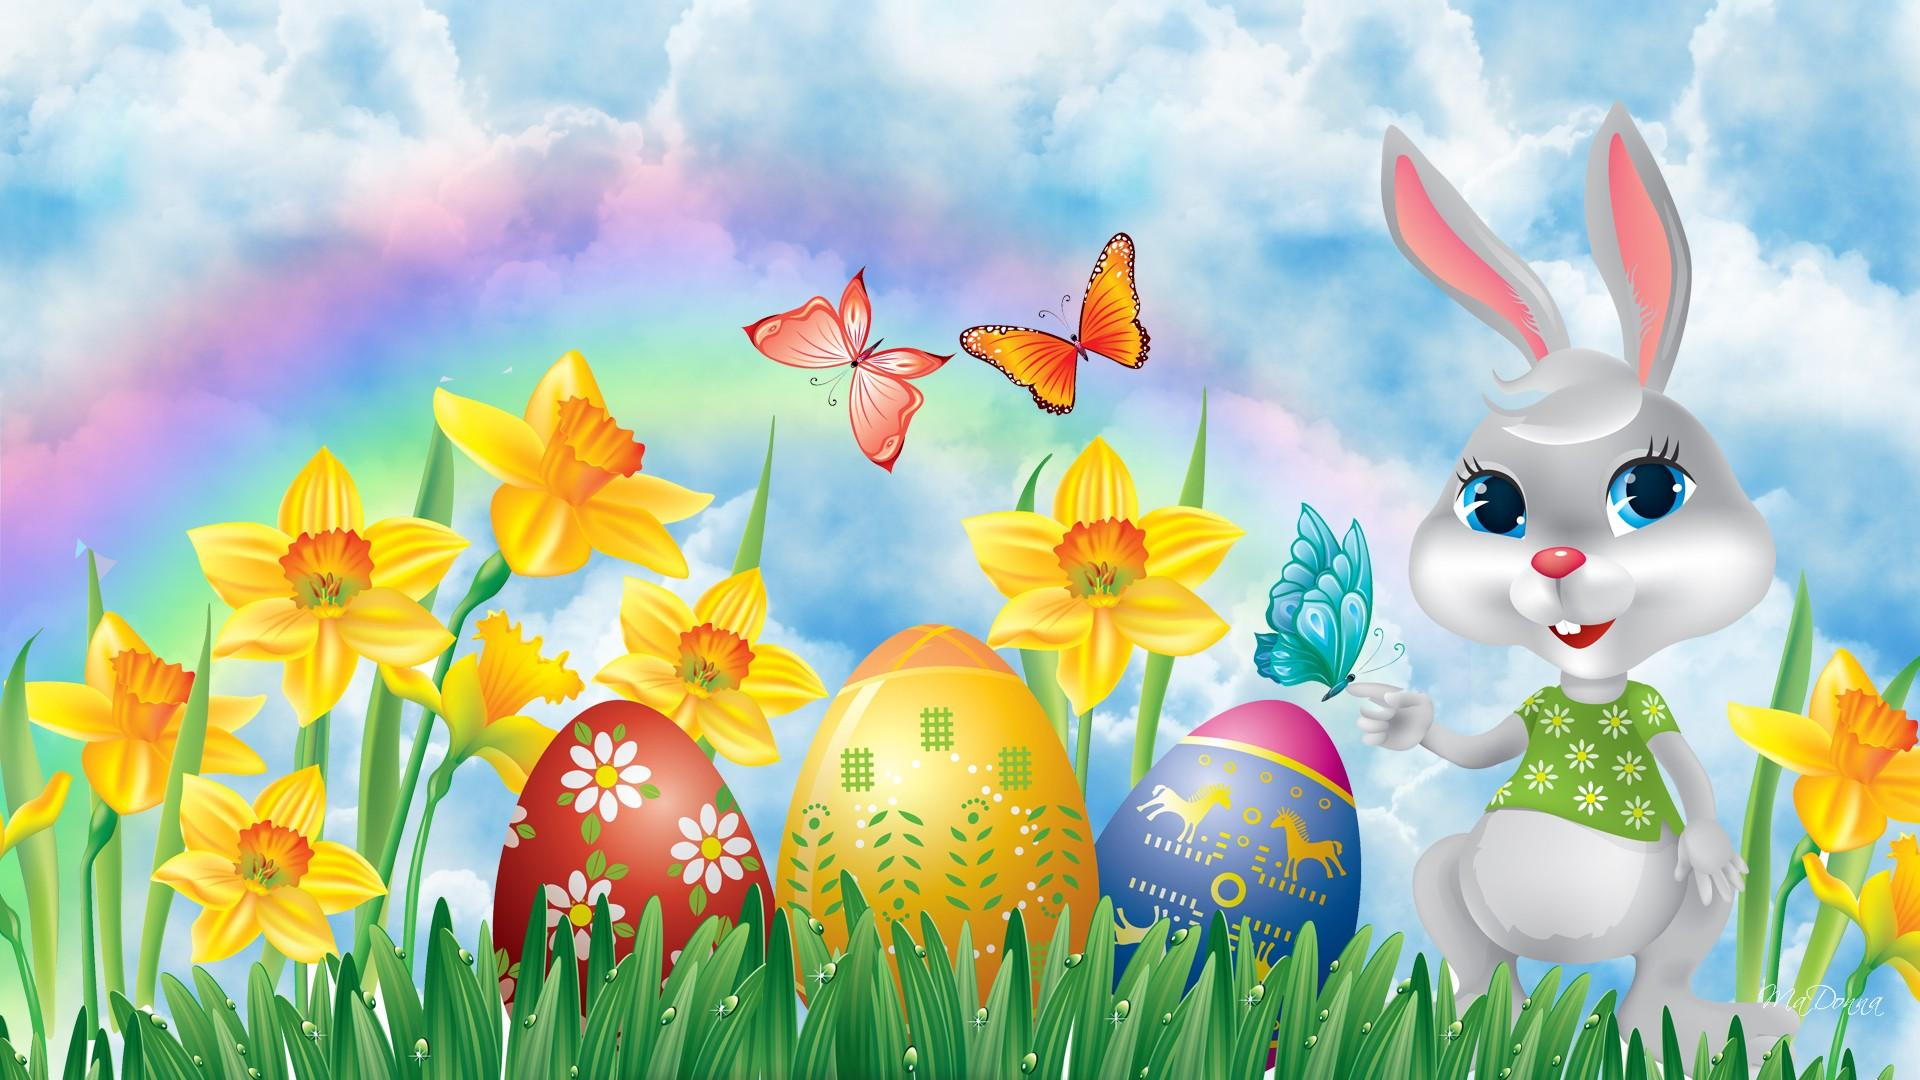 holiday easter holiday bunny flower daffodil egg easter egg colors colorful wallpaper